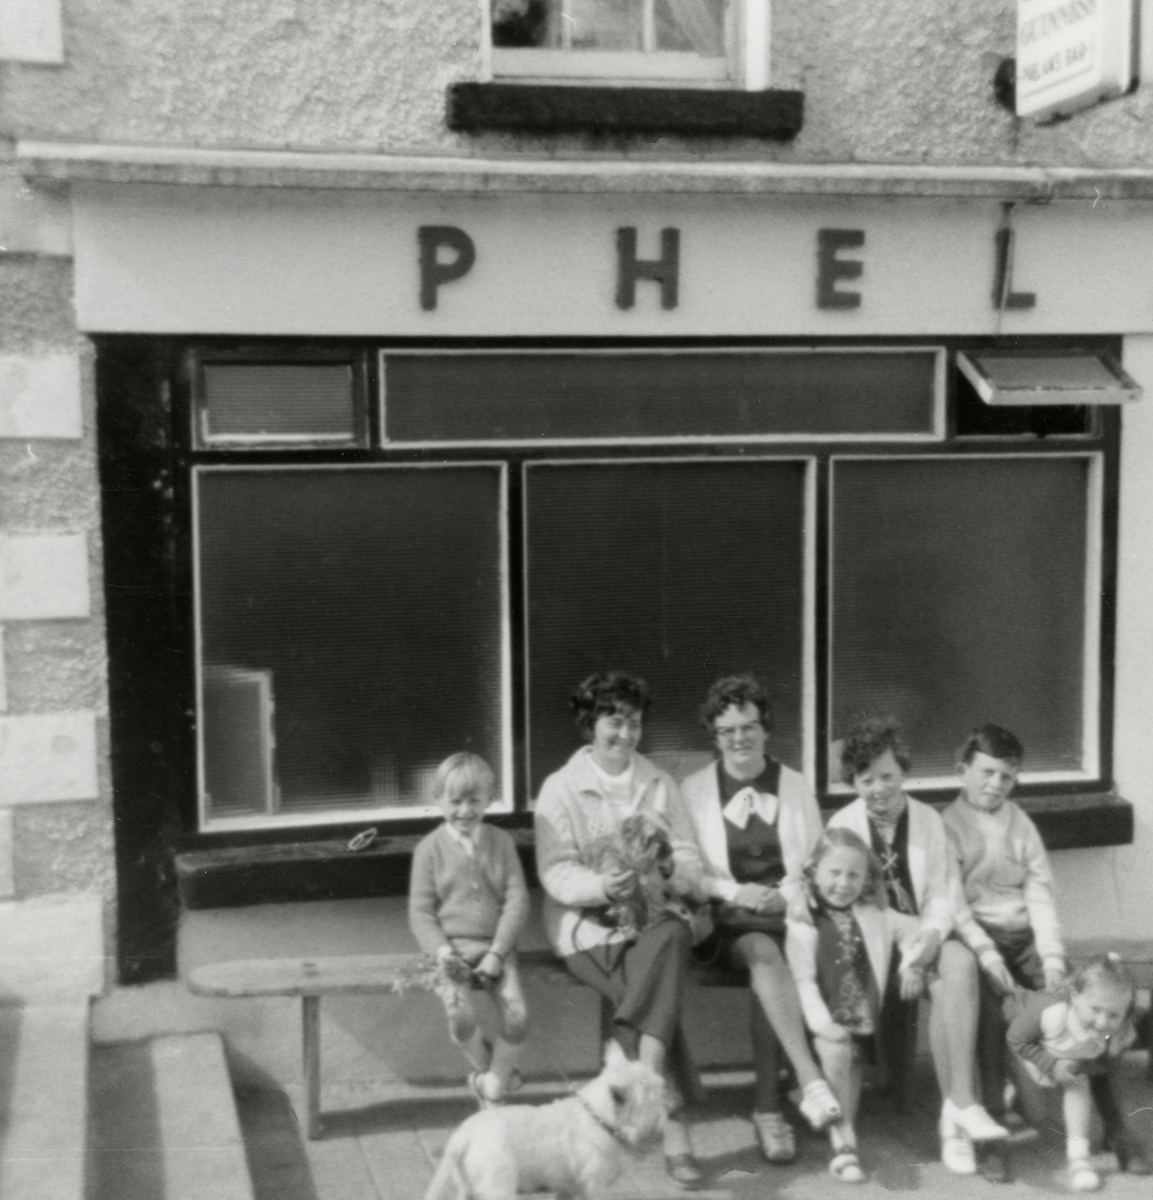 Dillon // County Wexford :: Outside Phelan's pub, Inistioge